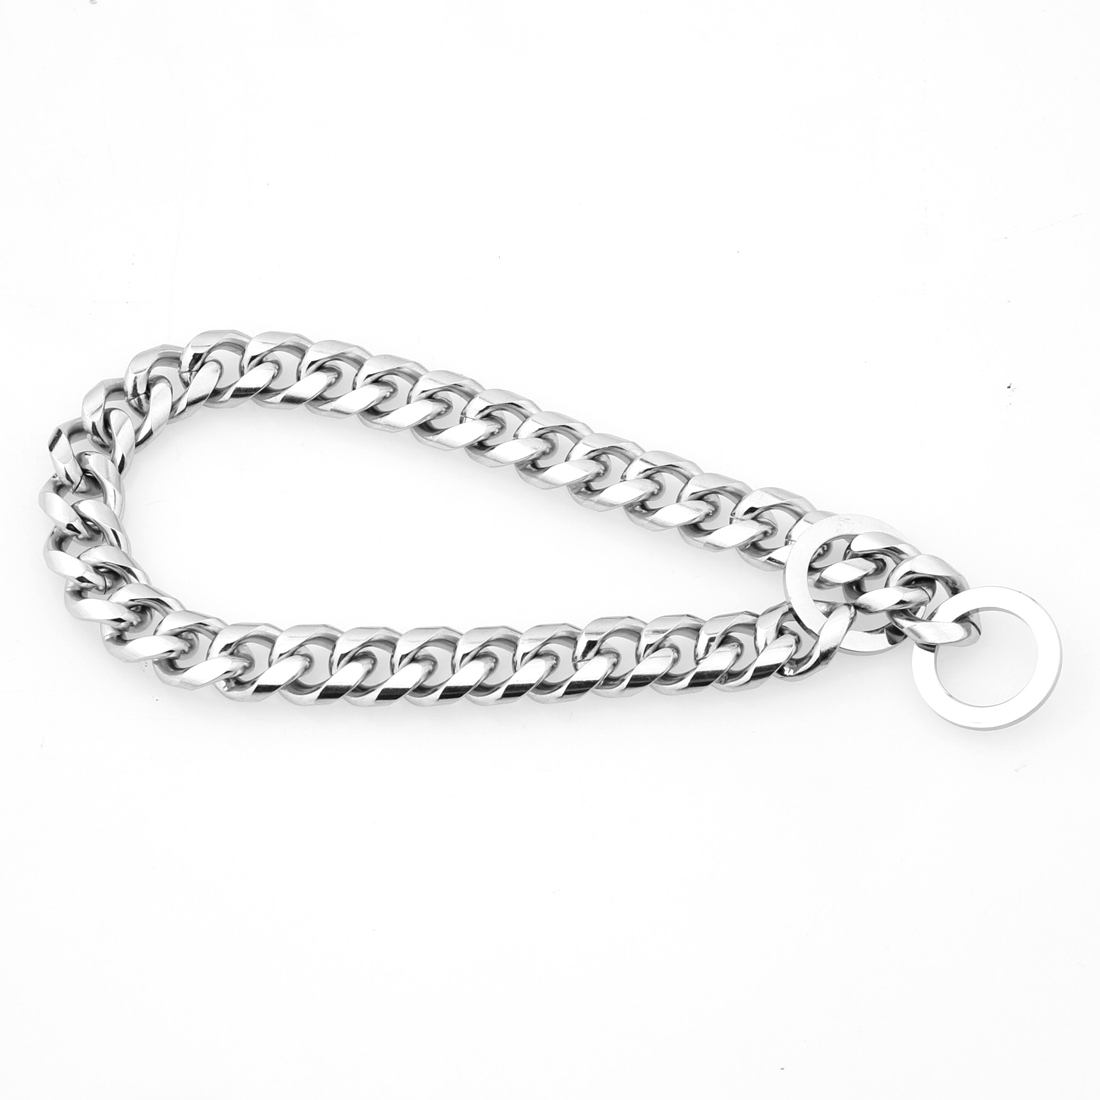 Tisnium 12mm Silver Color Dog Chain Collar Pet